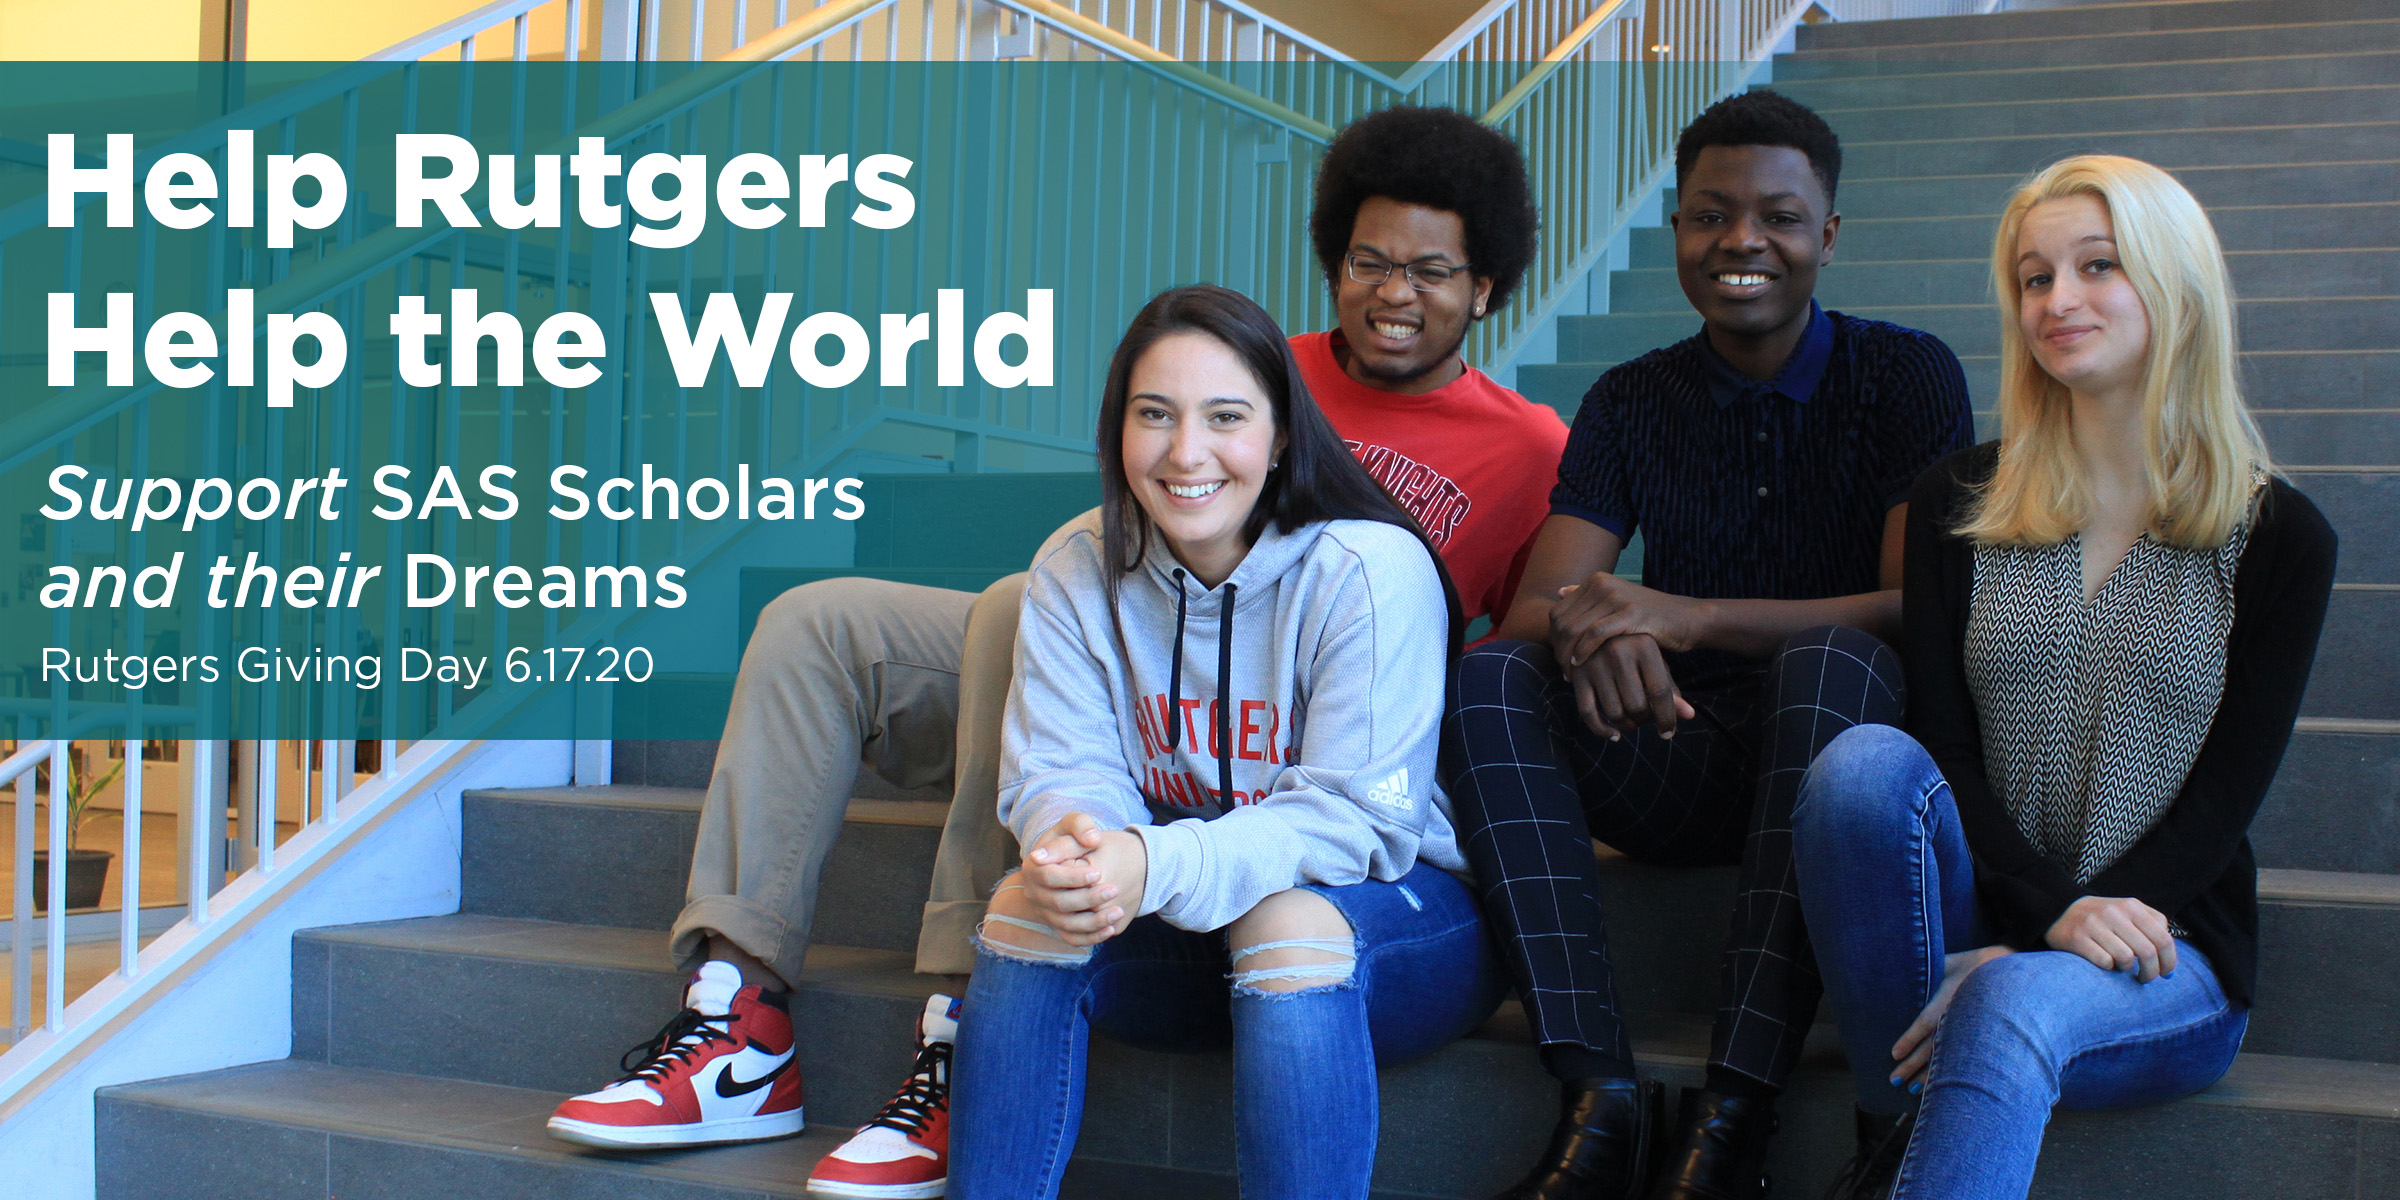 Rutgers Giving Day 2020: Help Rutgers Help the World